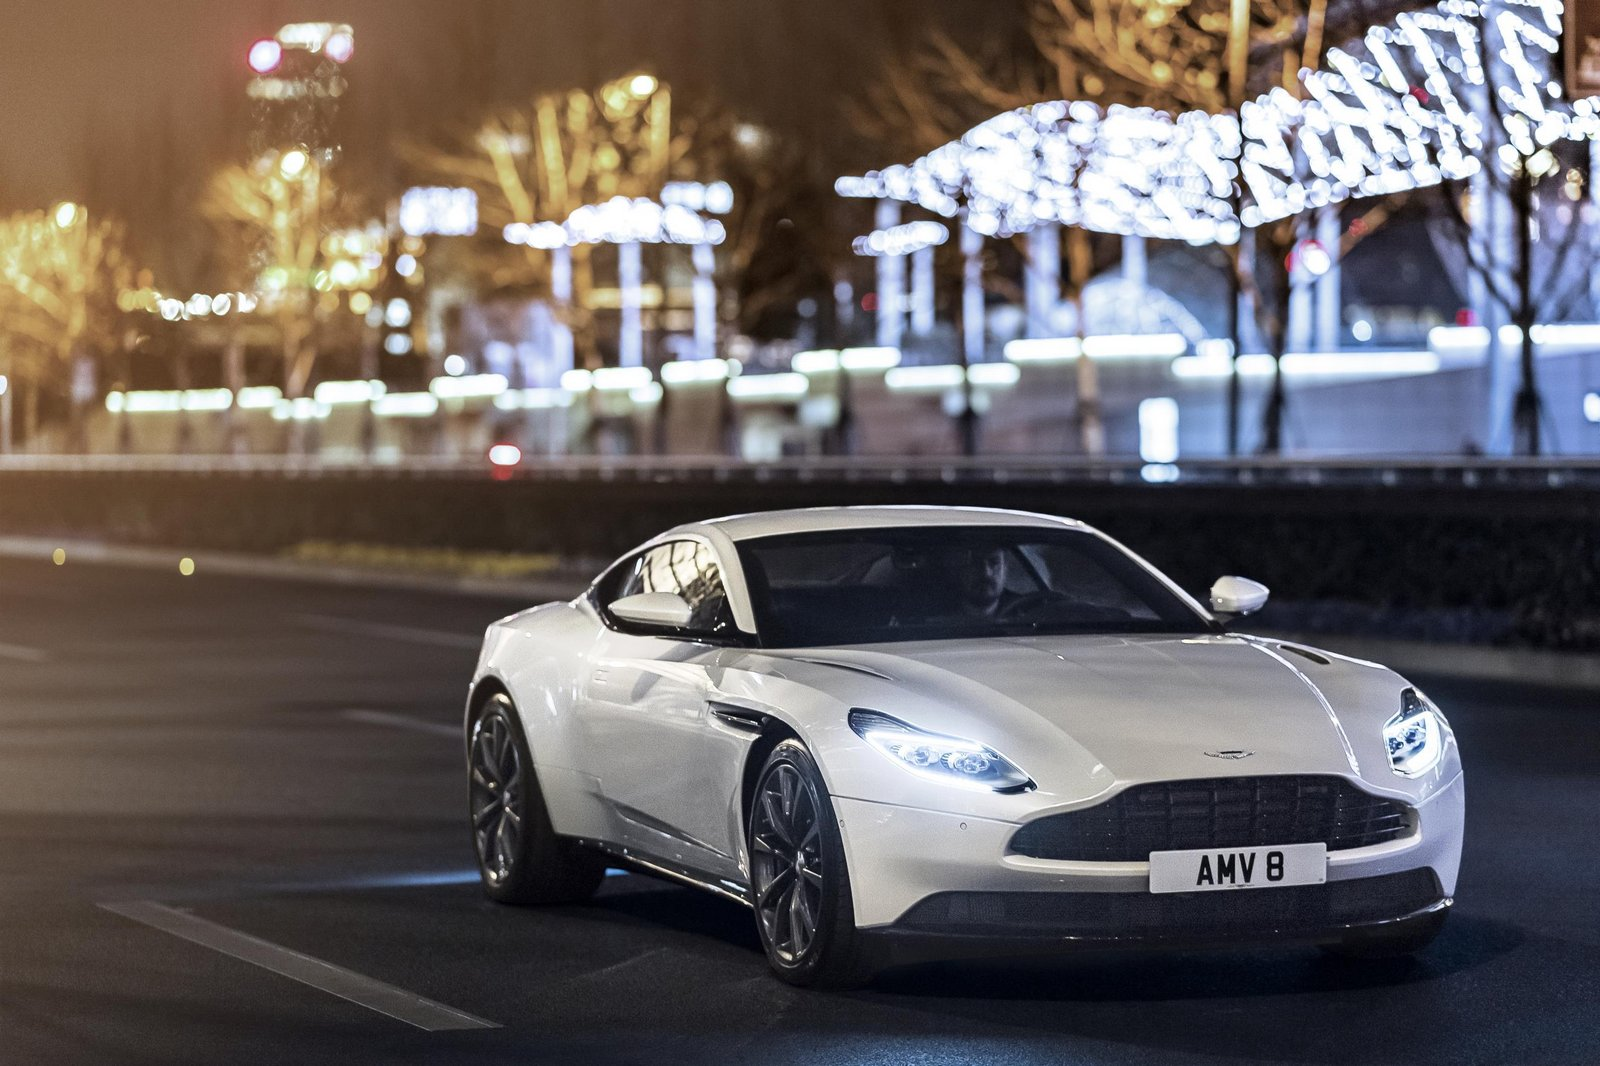 aston martin db11 gains an amg sourced twin turbo v8. Black Bedroom Furniture Sets. Home Design Ideas